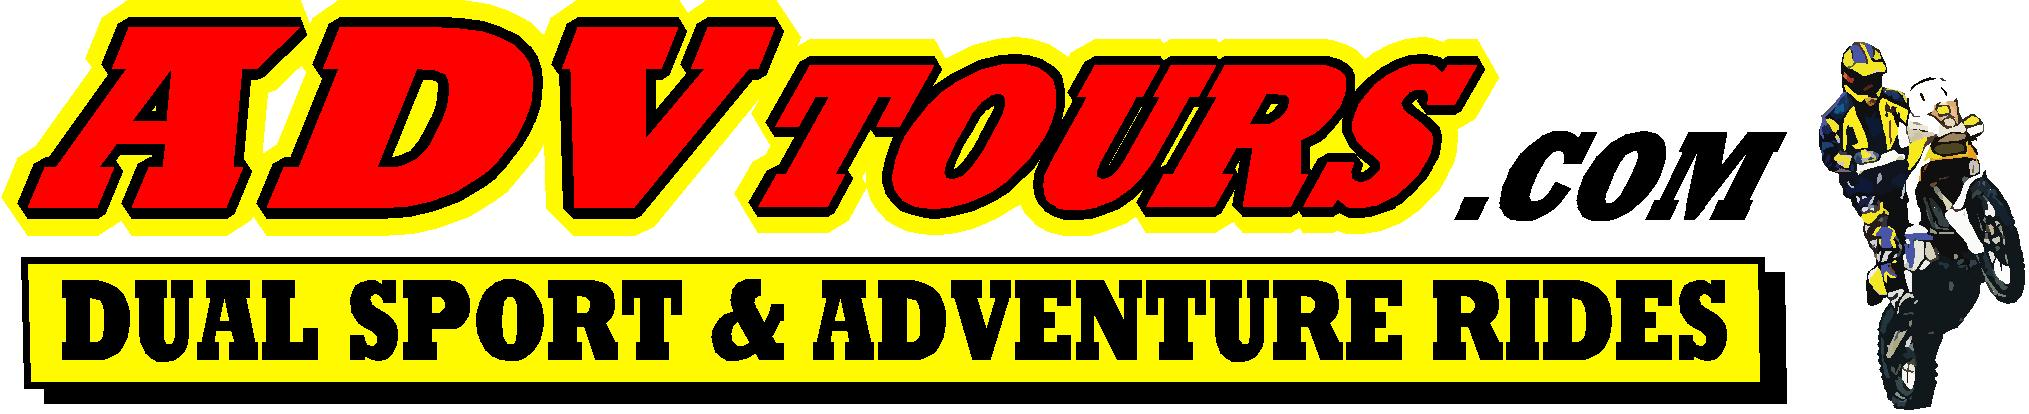 Adventure Moto Tours